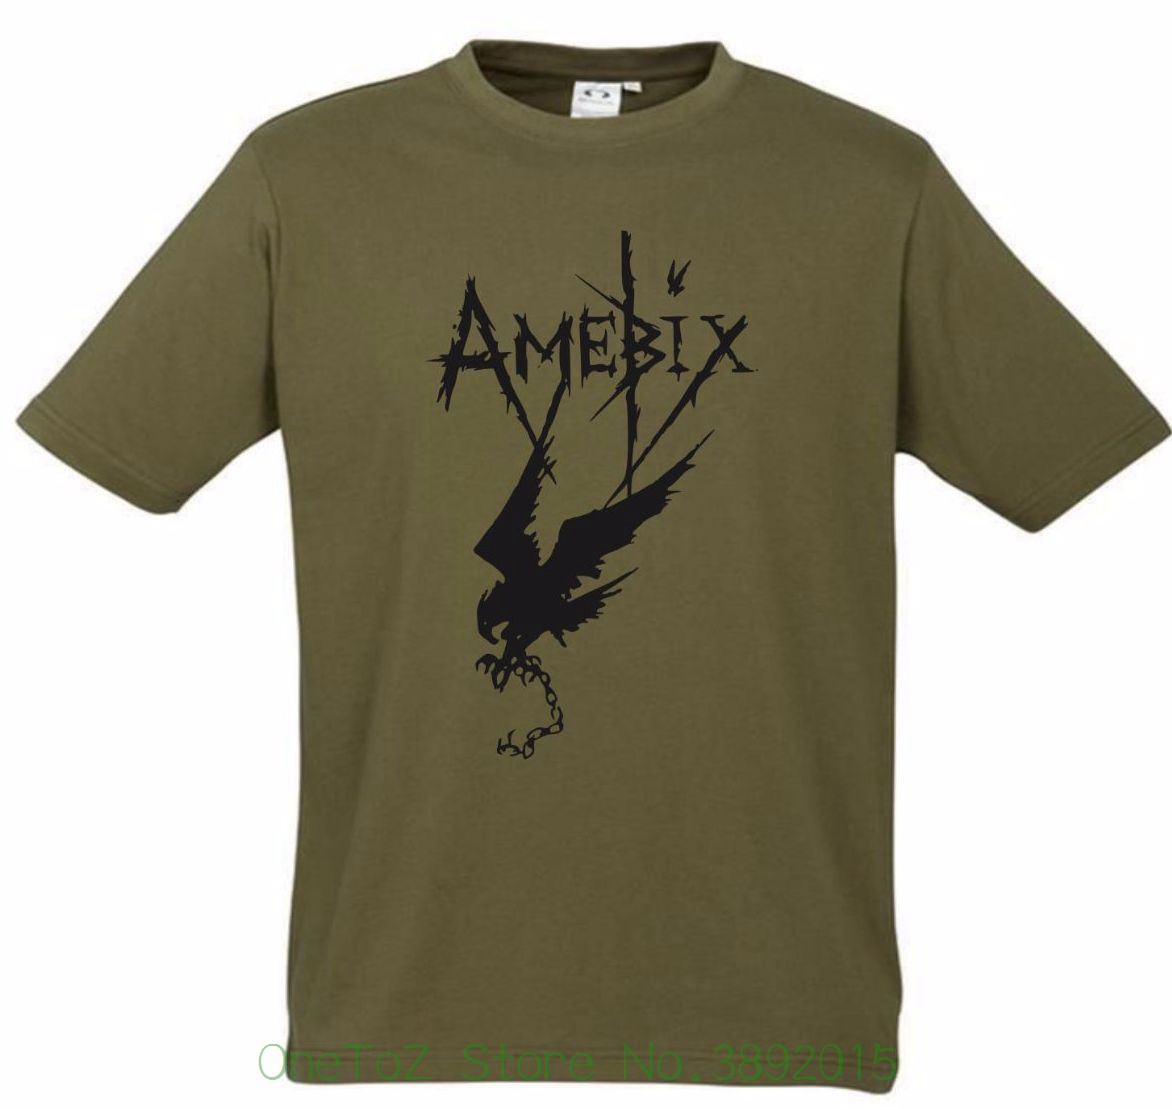 100 % Cotton T Shirt For Boy Amebix T-shirt New Khaki Black T Shirt S - Xxl Punk Rock Anarchy Band Crass Tee Easy And Simple To Handle